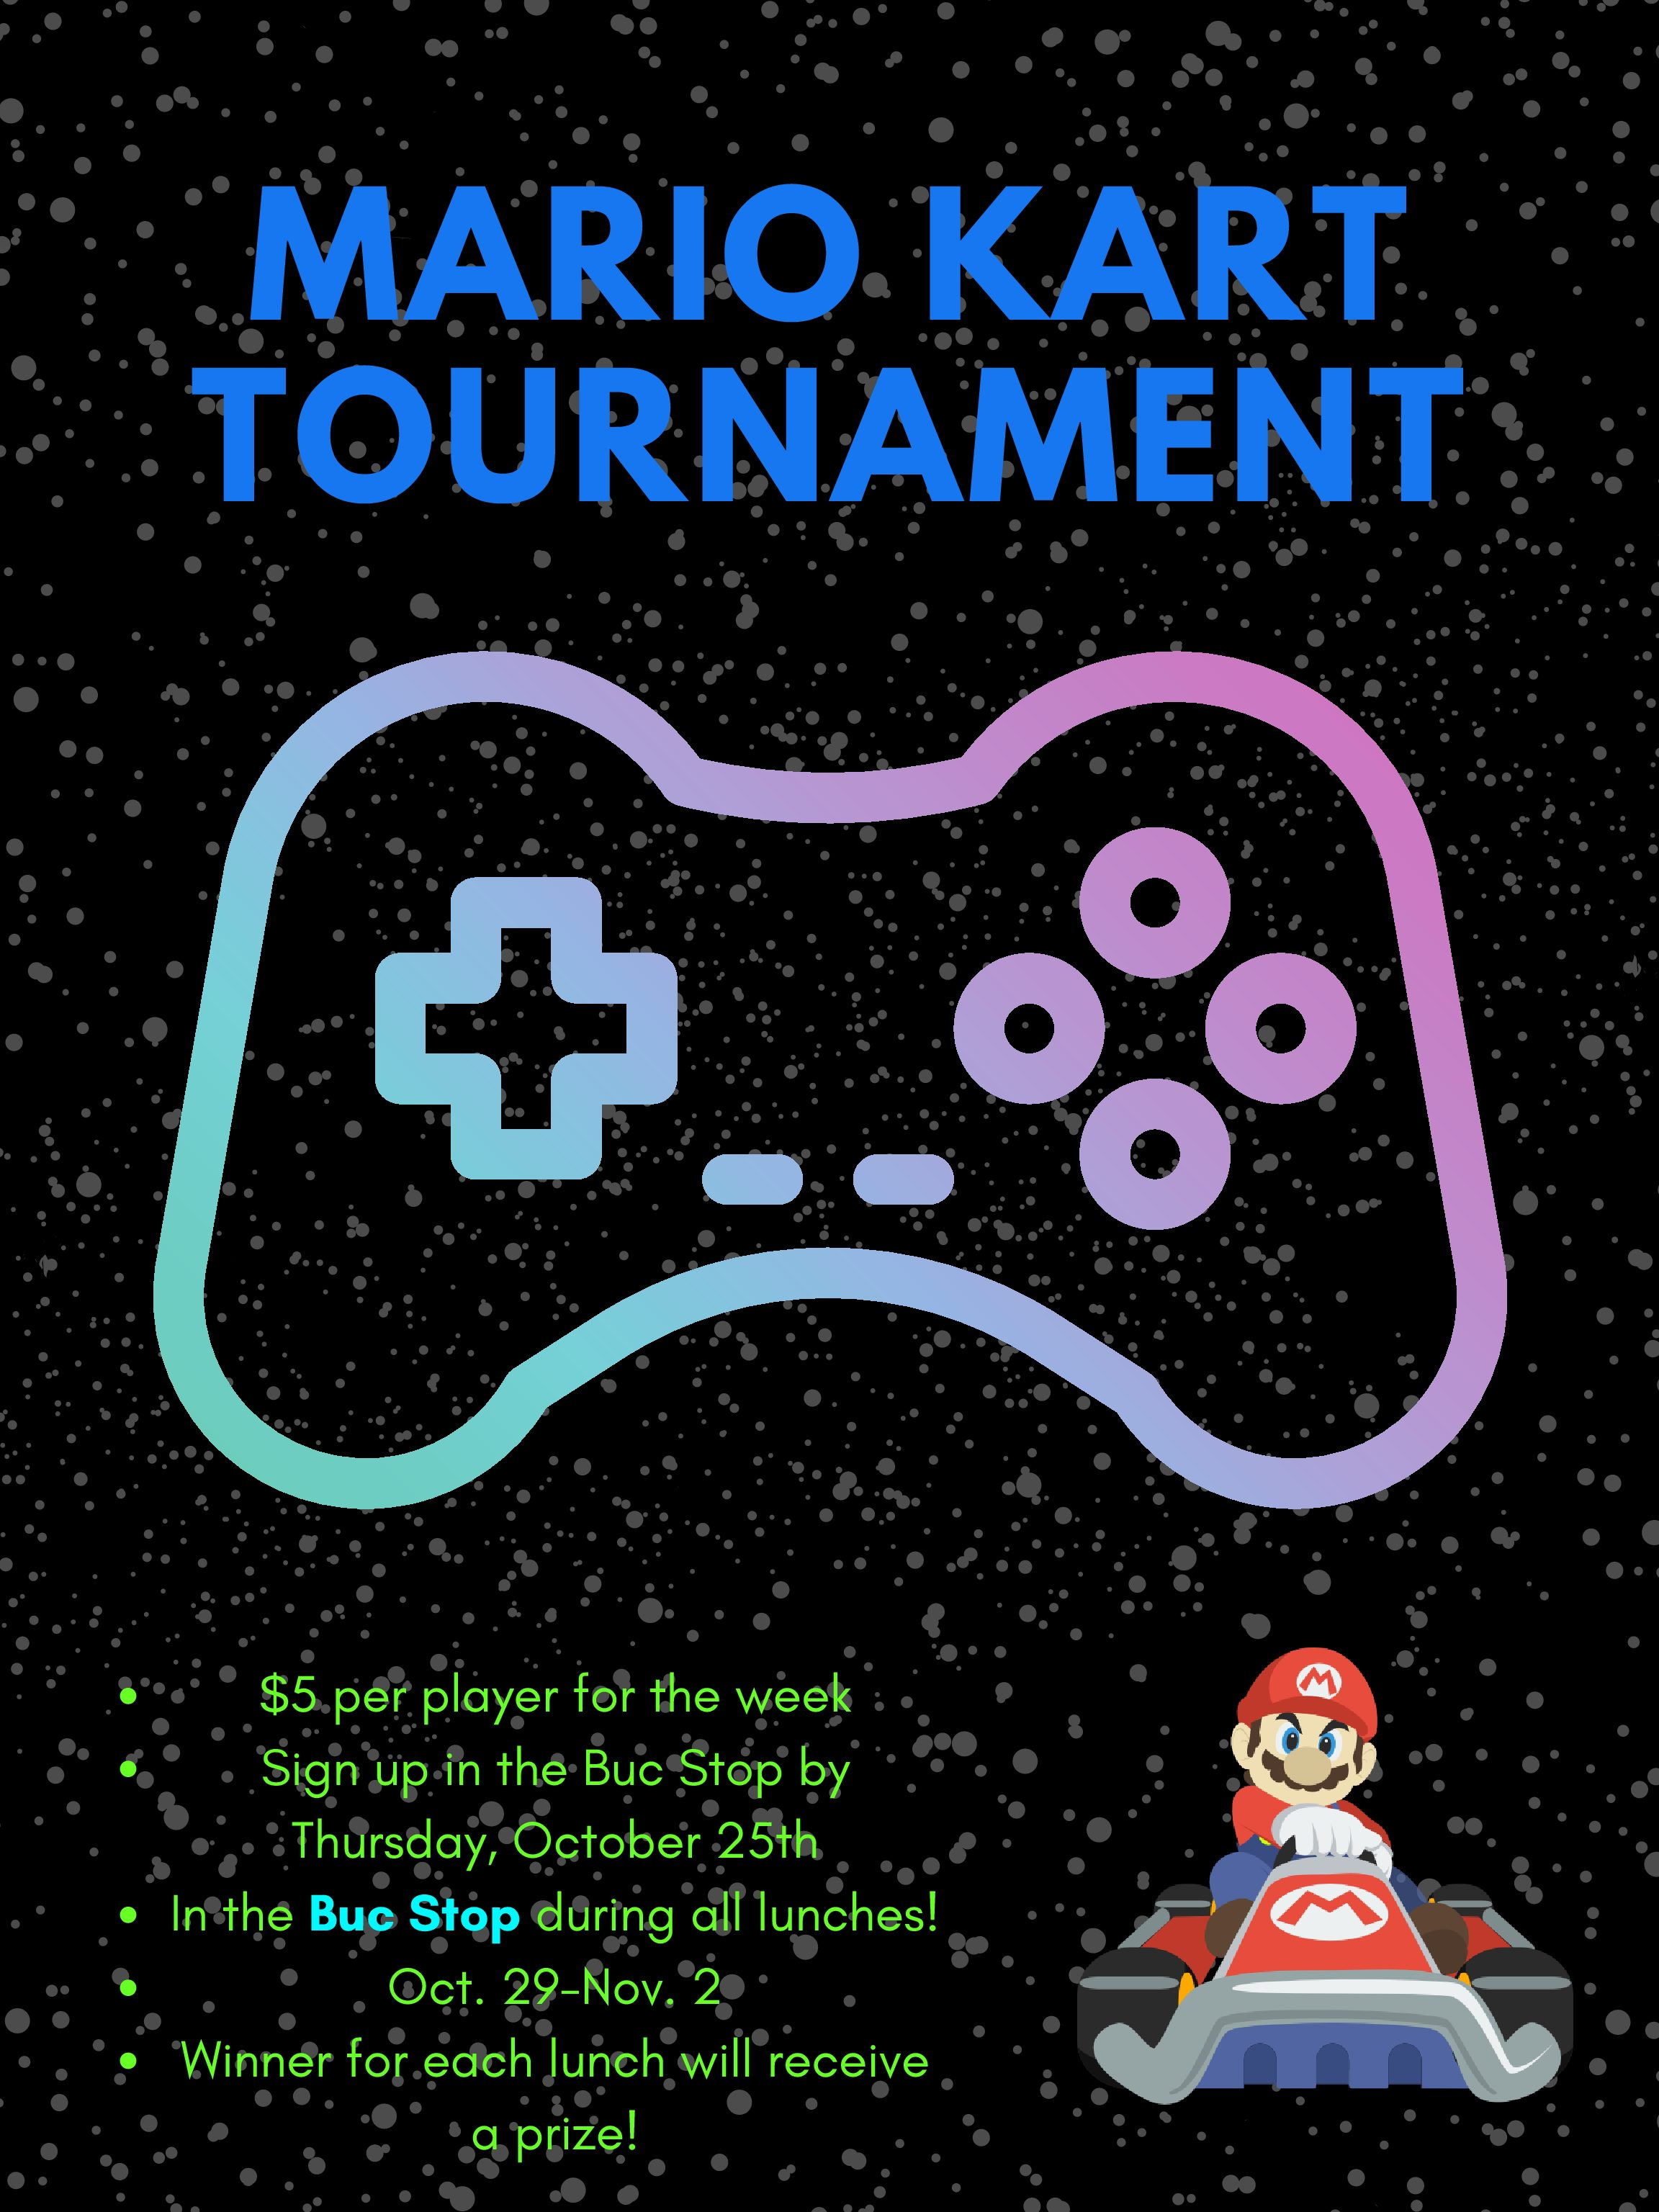 The logo for the Mario Kart Tournament hosted by the Grand Haven High School Buc Stop